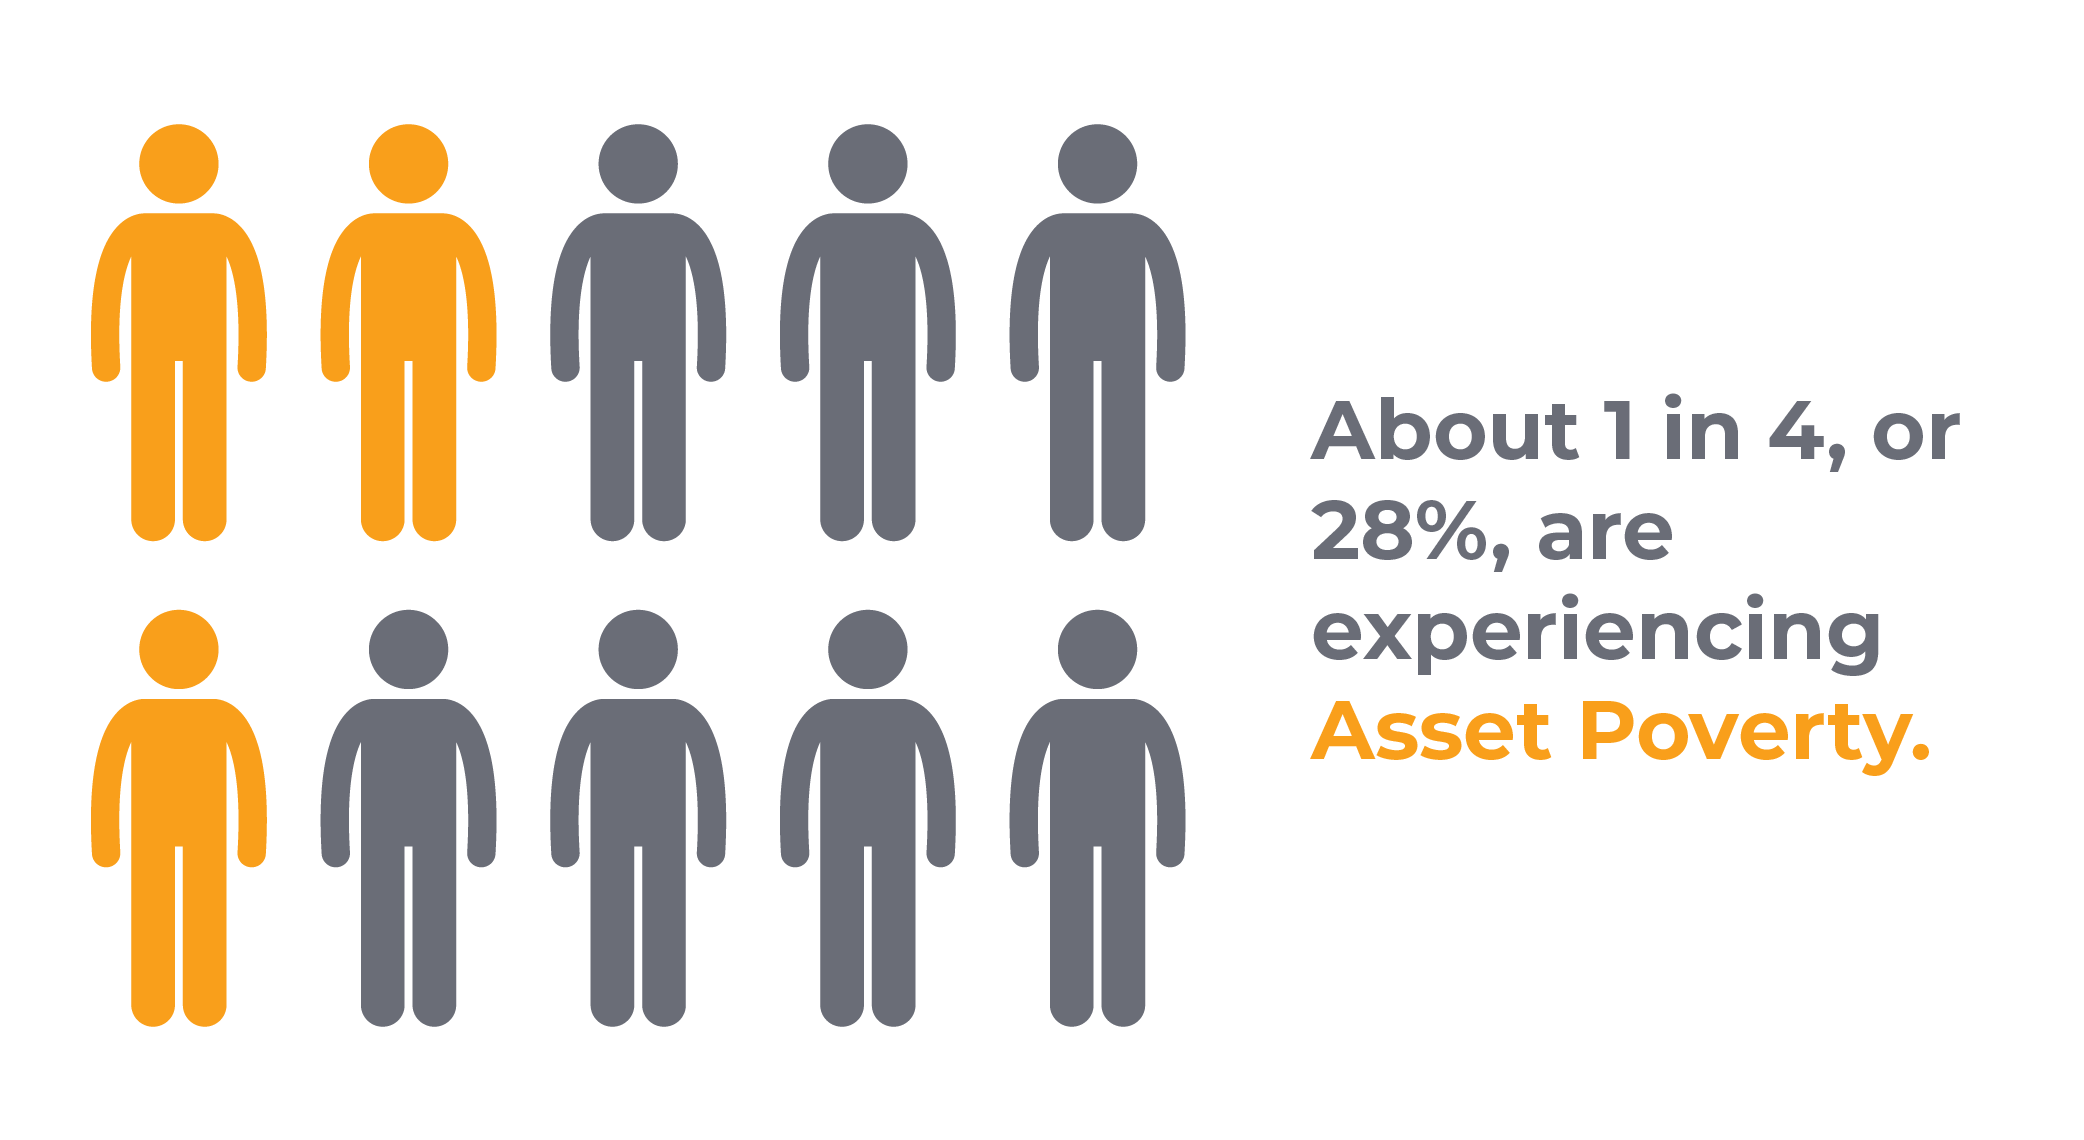 About 3 in 10, or 28%, are experiencing asset poverty.